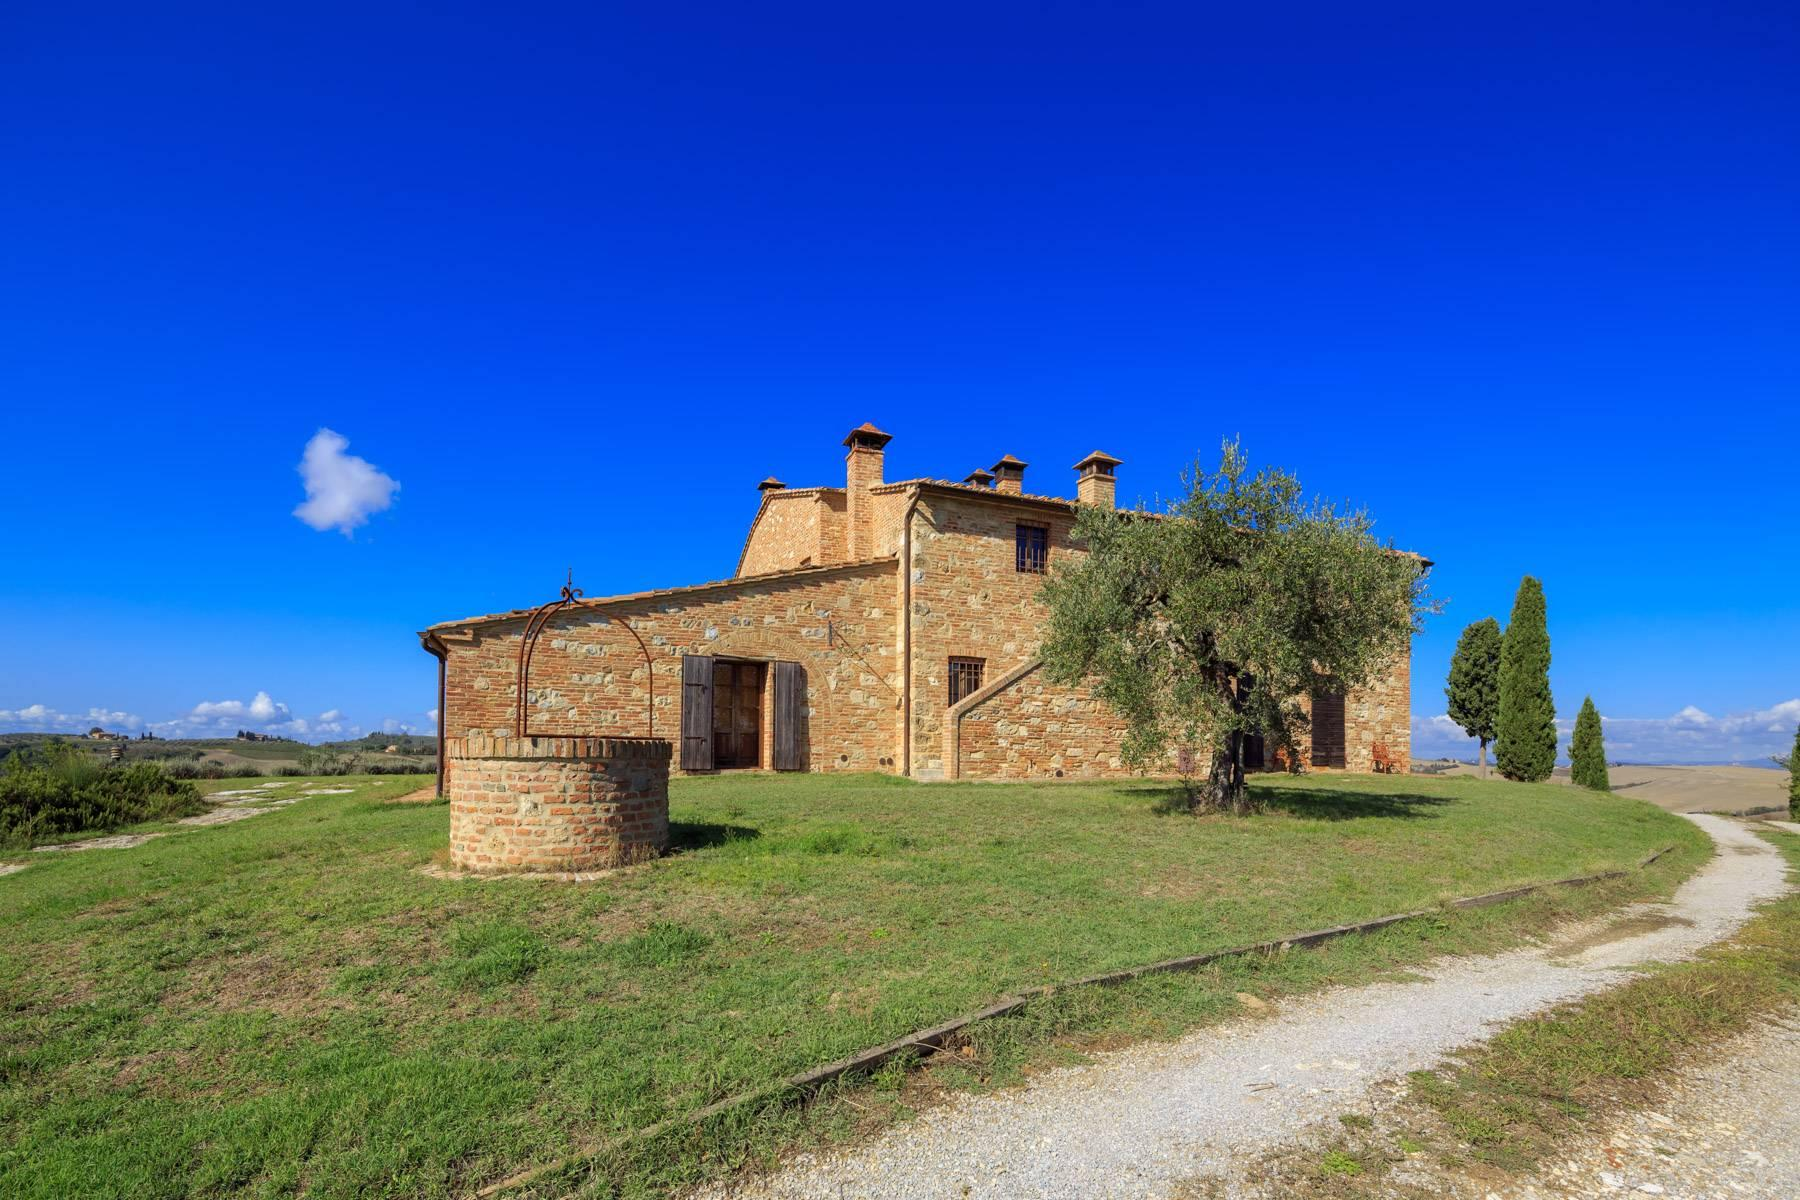 Wonderful tuscan countryhouse on the hills around Siena - 17